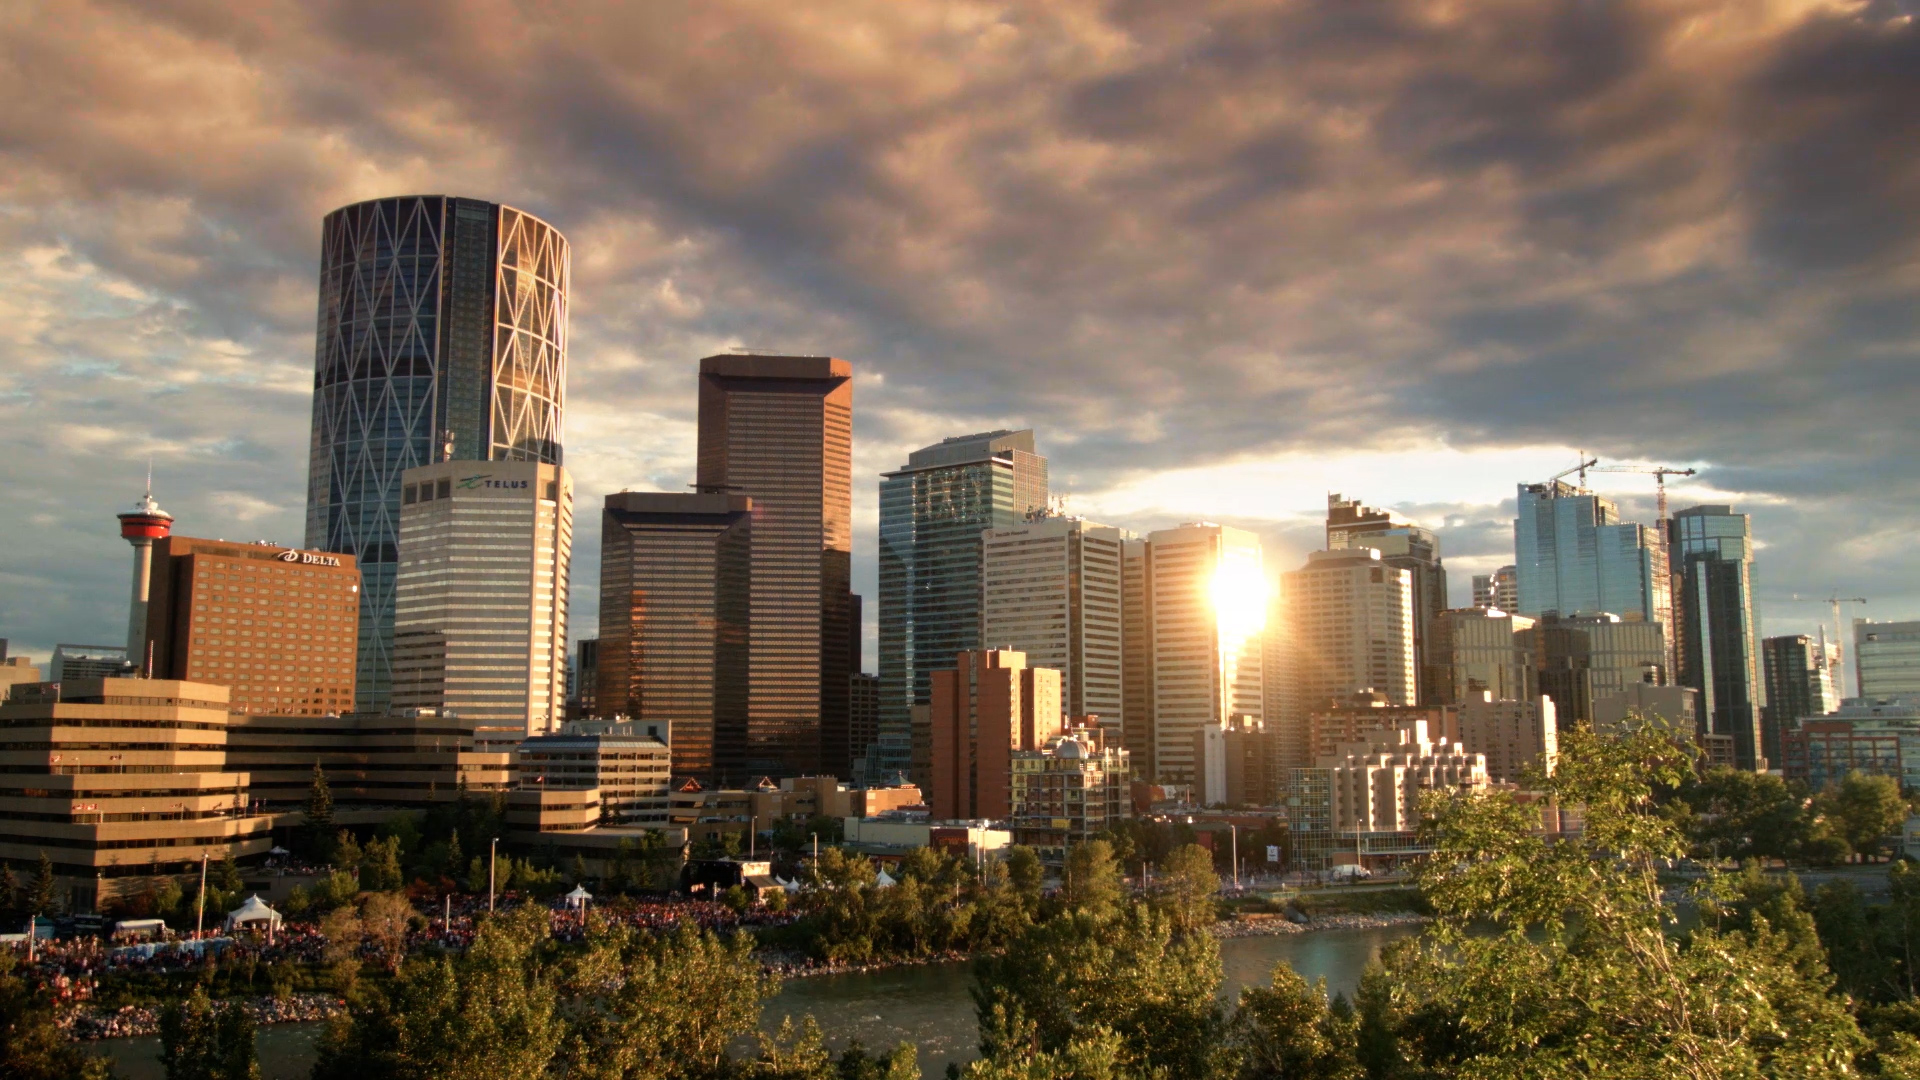 STOCK FOOTAGE LICENSES - We have partnered with Calgary based Dissolve Ltd. to exclusively contribute stock footage clips to their expansive library. My available stock footage clips can be found here.